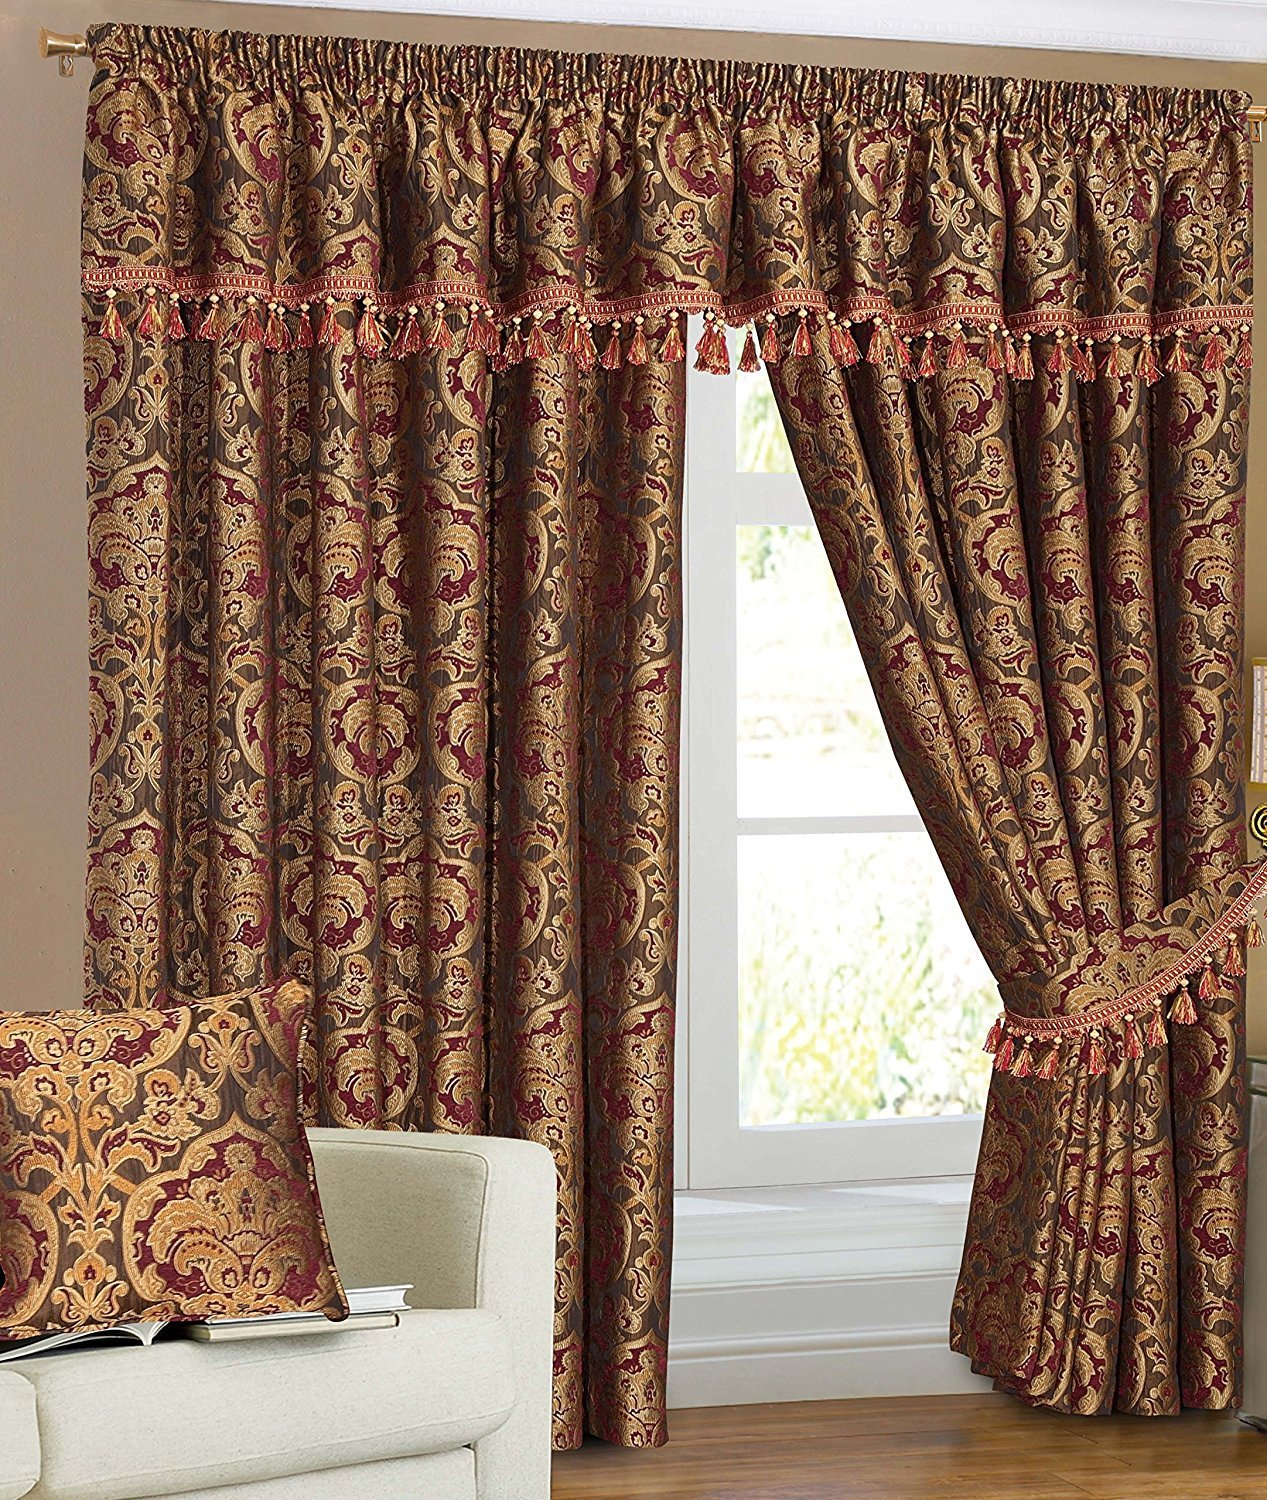 Fully Lined Readymade Pencil Pleat Heavy Chenille Georgeia Curtains Pair, Matching Pelmet, Tie Backs & Cushion Covers (Cushion Cover 23″x 23″) Prime Linens